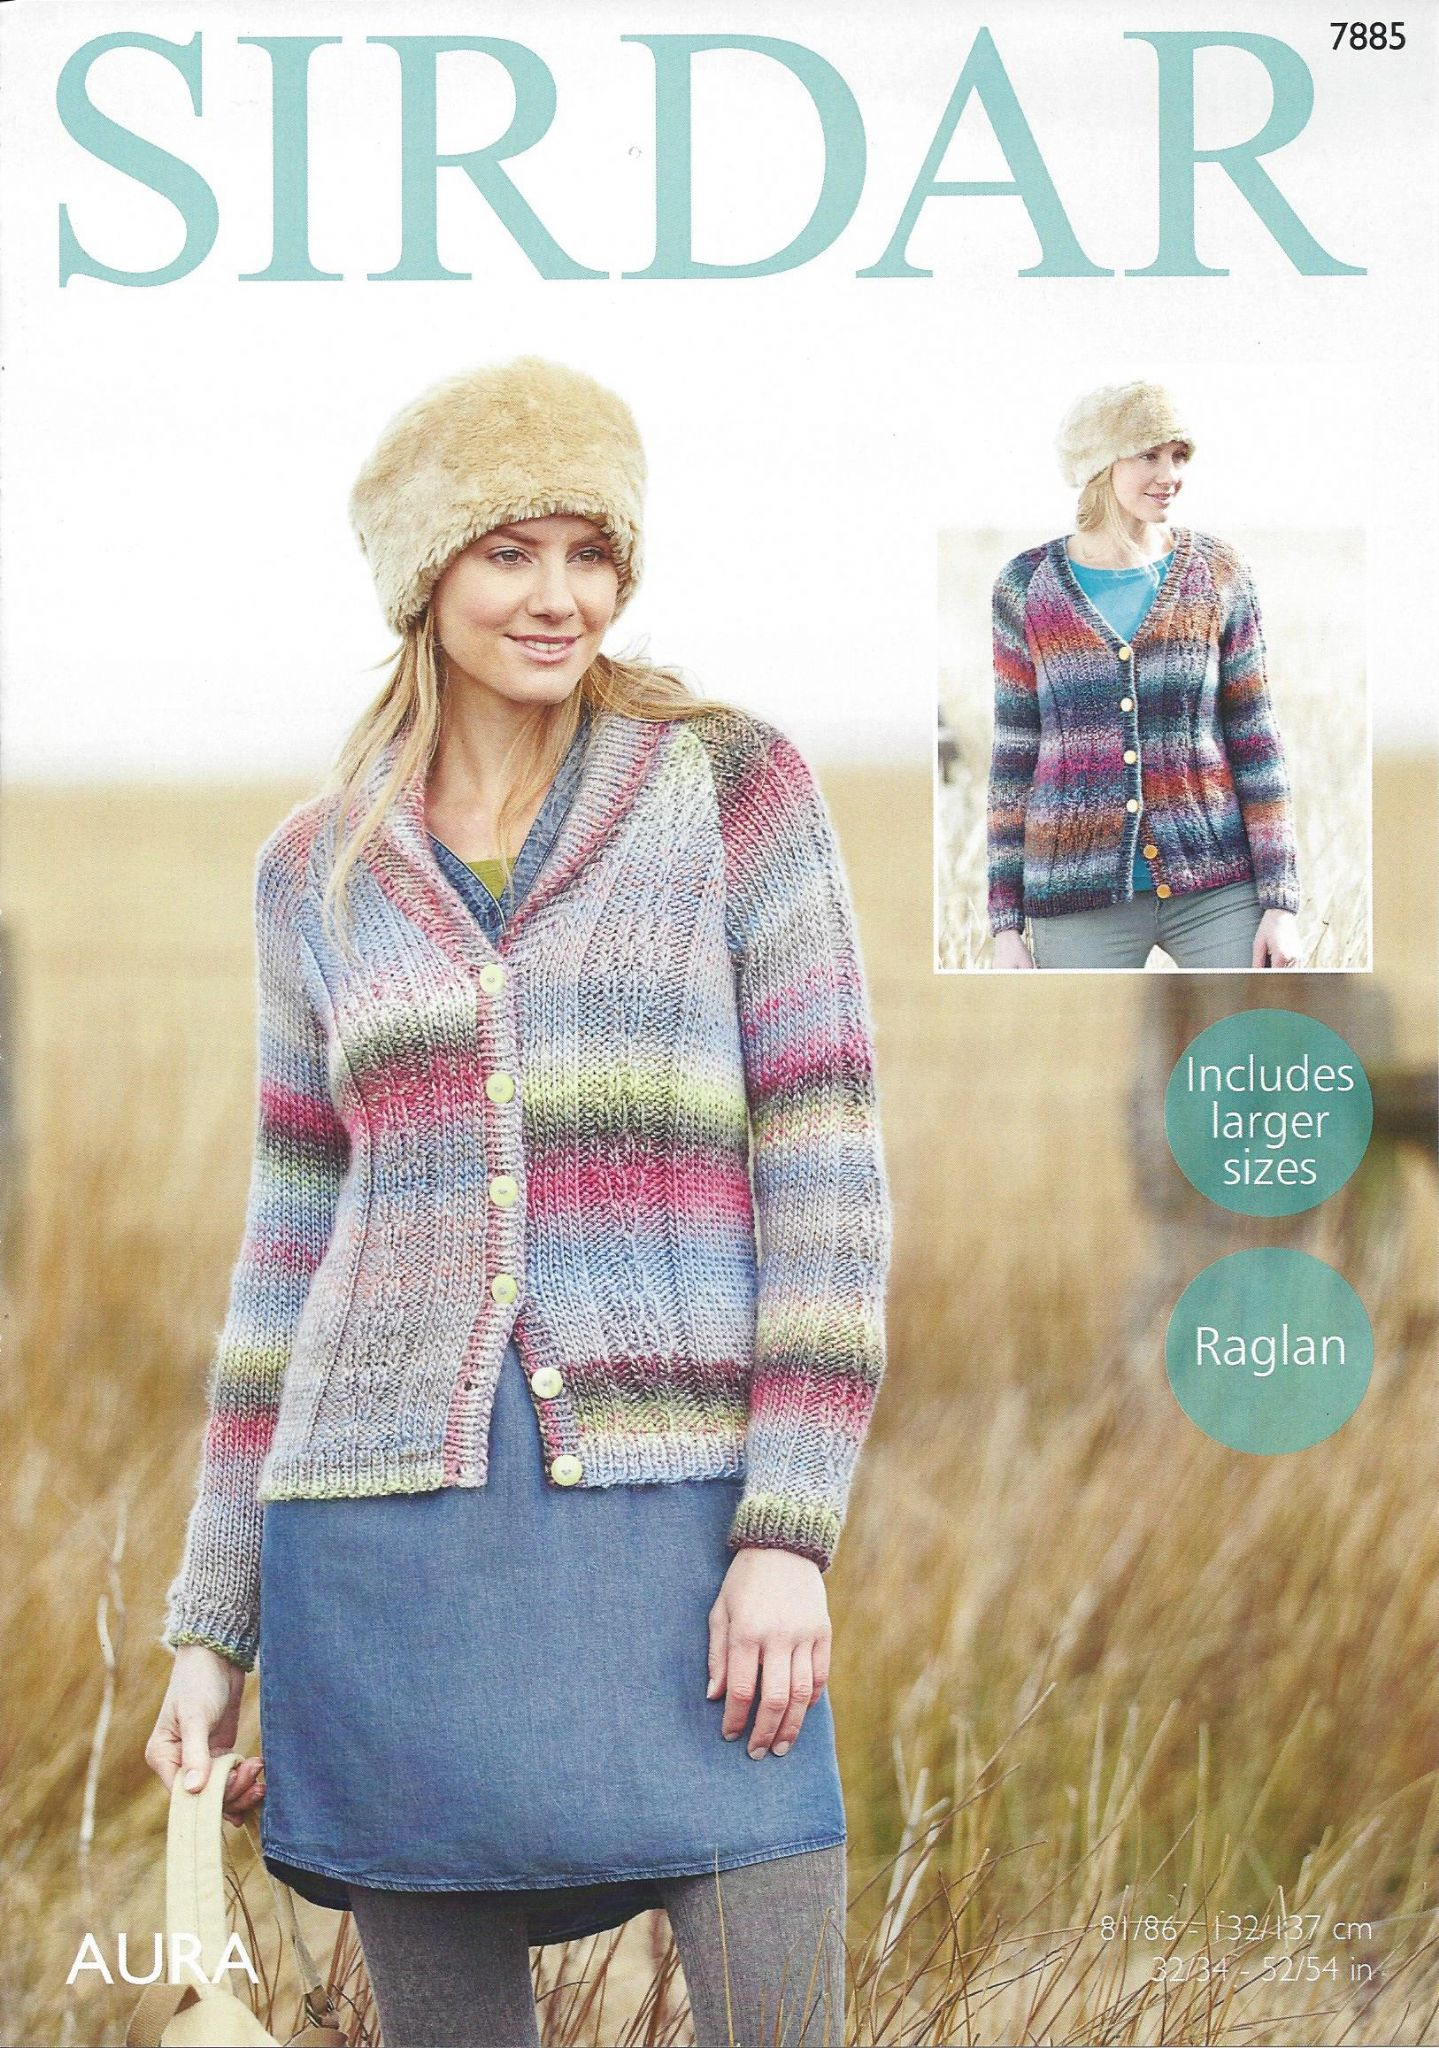 Machine Knitting Patterns For Babies : Sirdar Aura Chunky - 7885 Cardigans Knitting Pattern